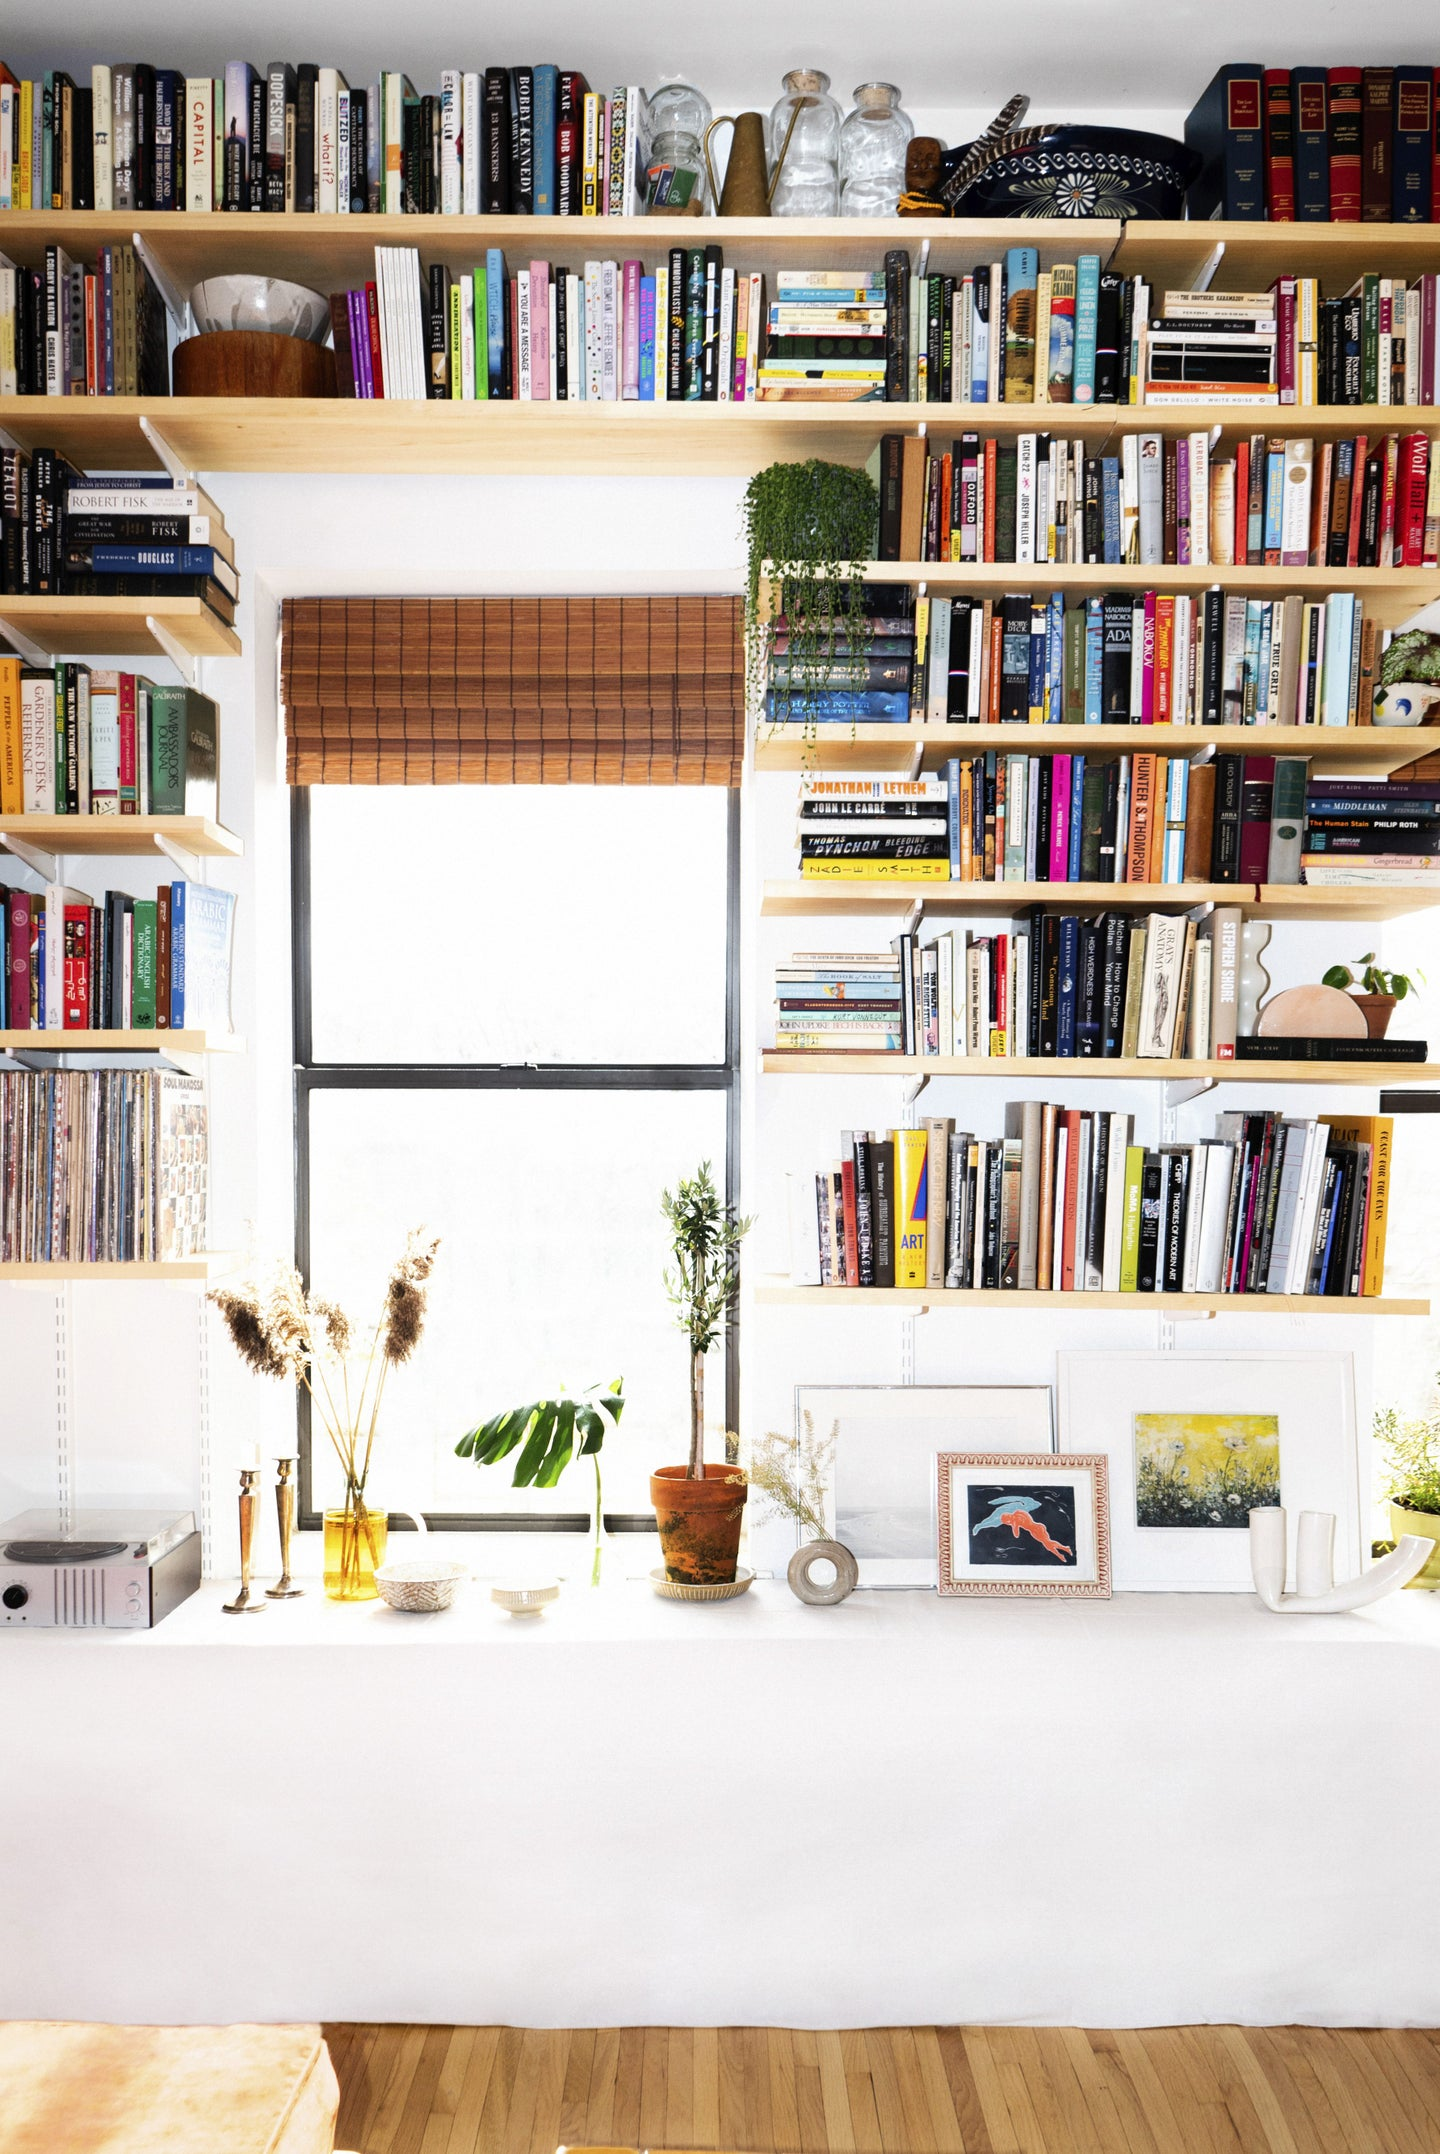 bookshelves with two windows in between